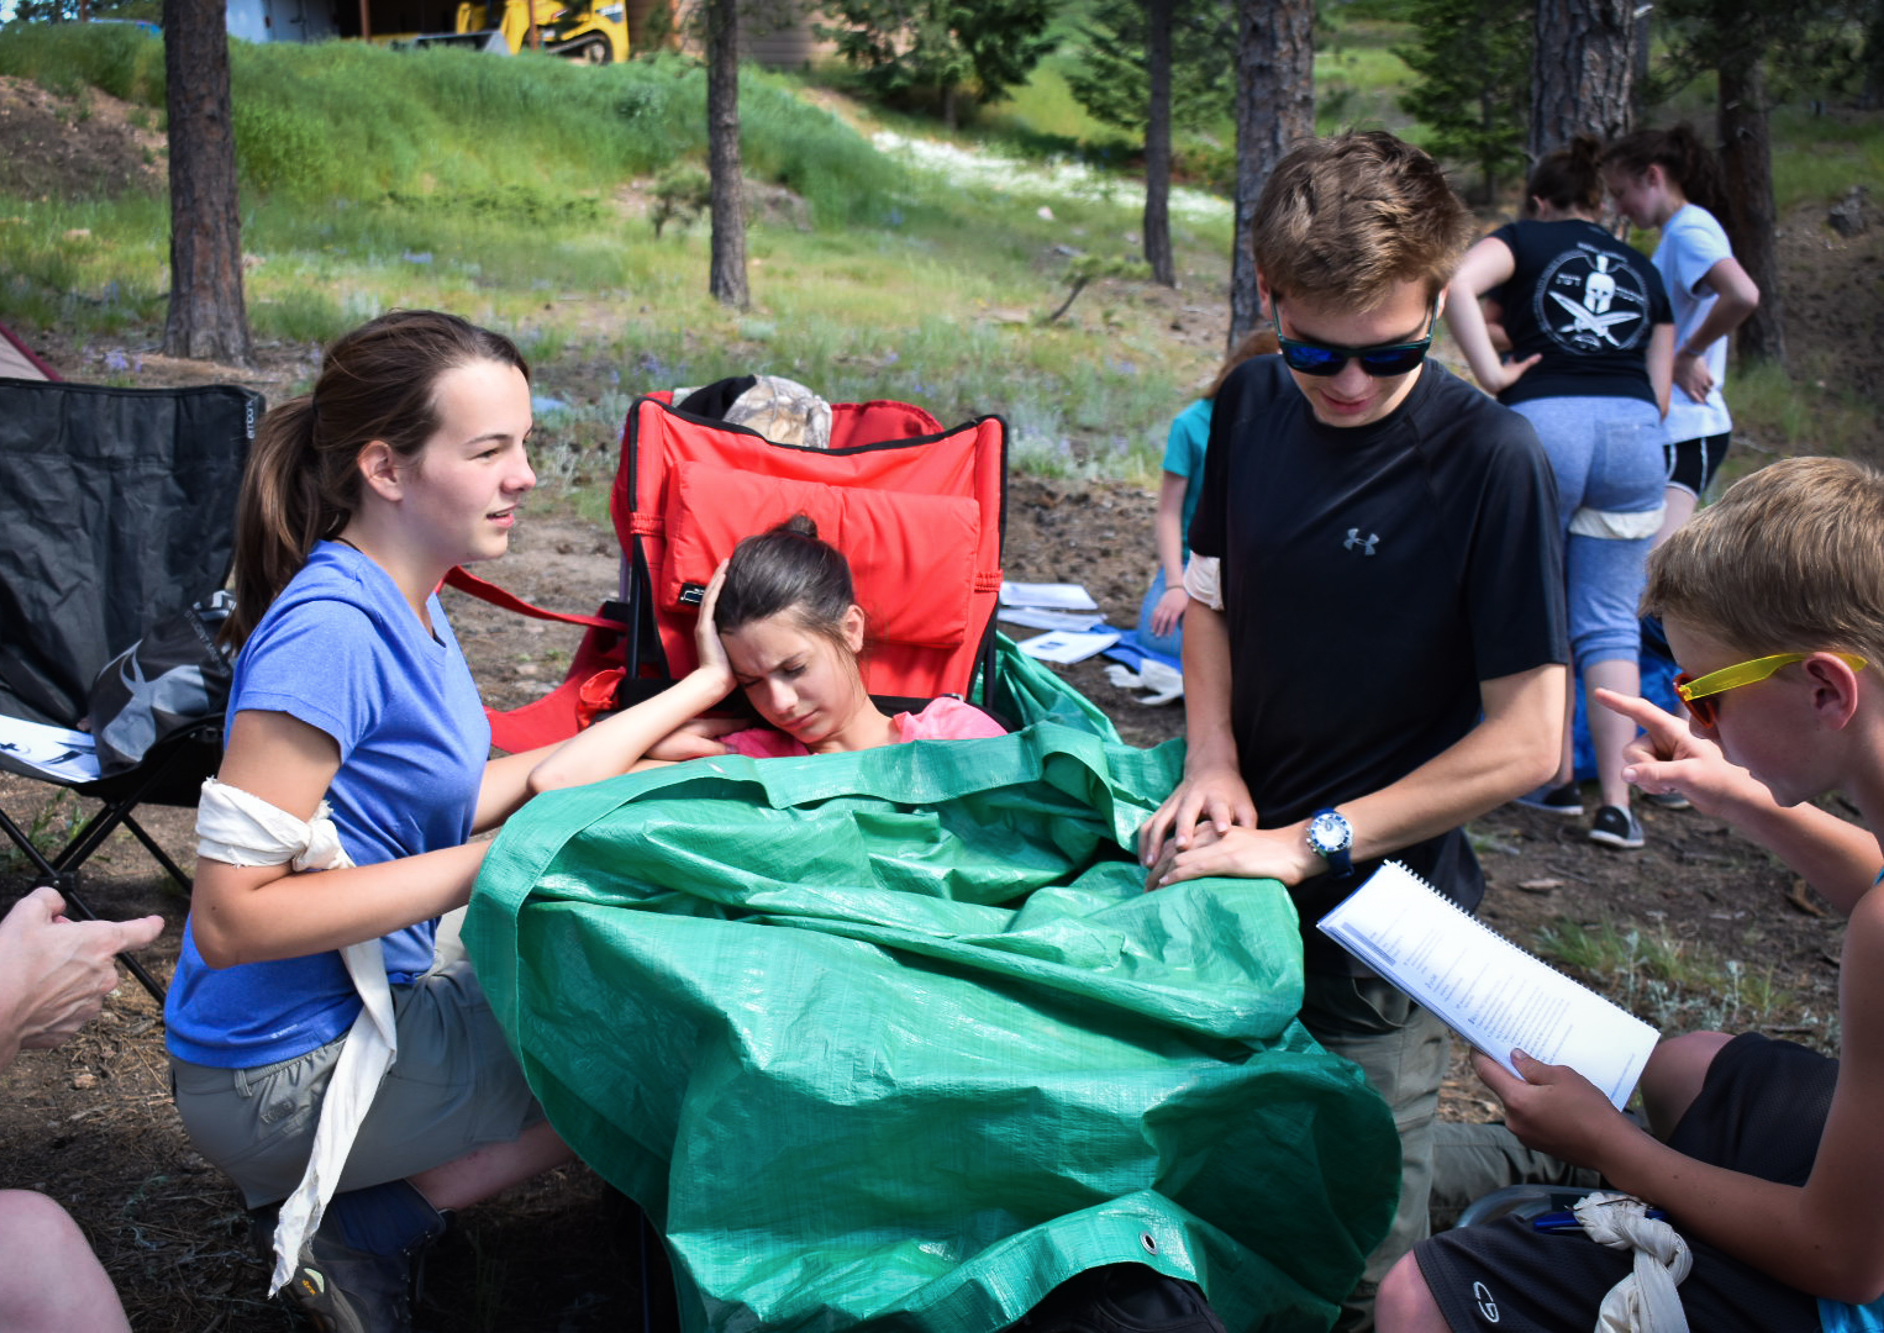 Wilderness First Aid - At the start of each summer, Ridgeview's Student Ambassadors embark on a trip to earn their Wilderness First Aid Certification. They can then venture on class trips during the summer and academic year, equipped with a foundation of wilderness skills.